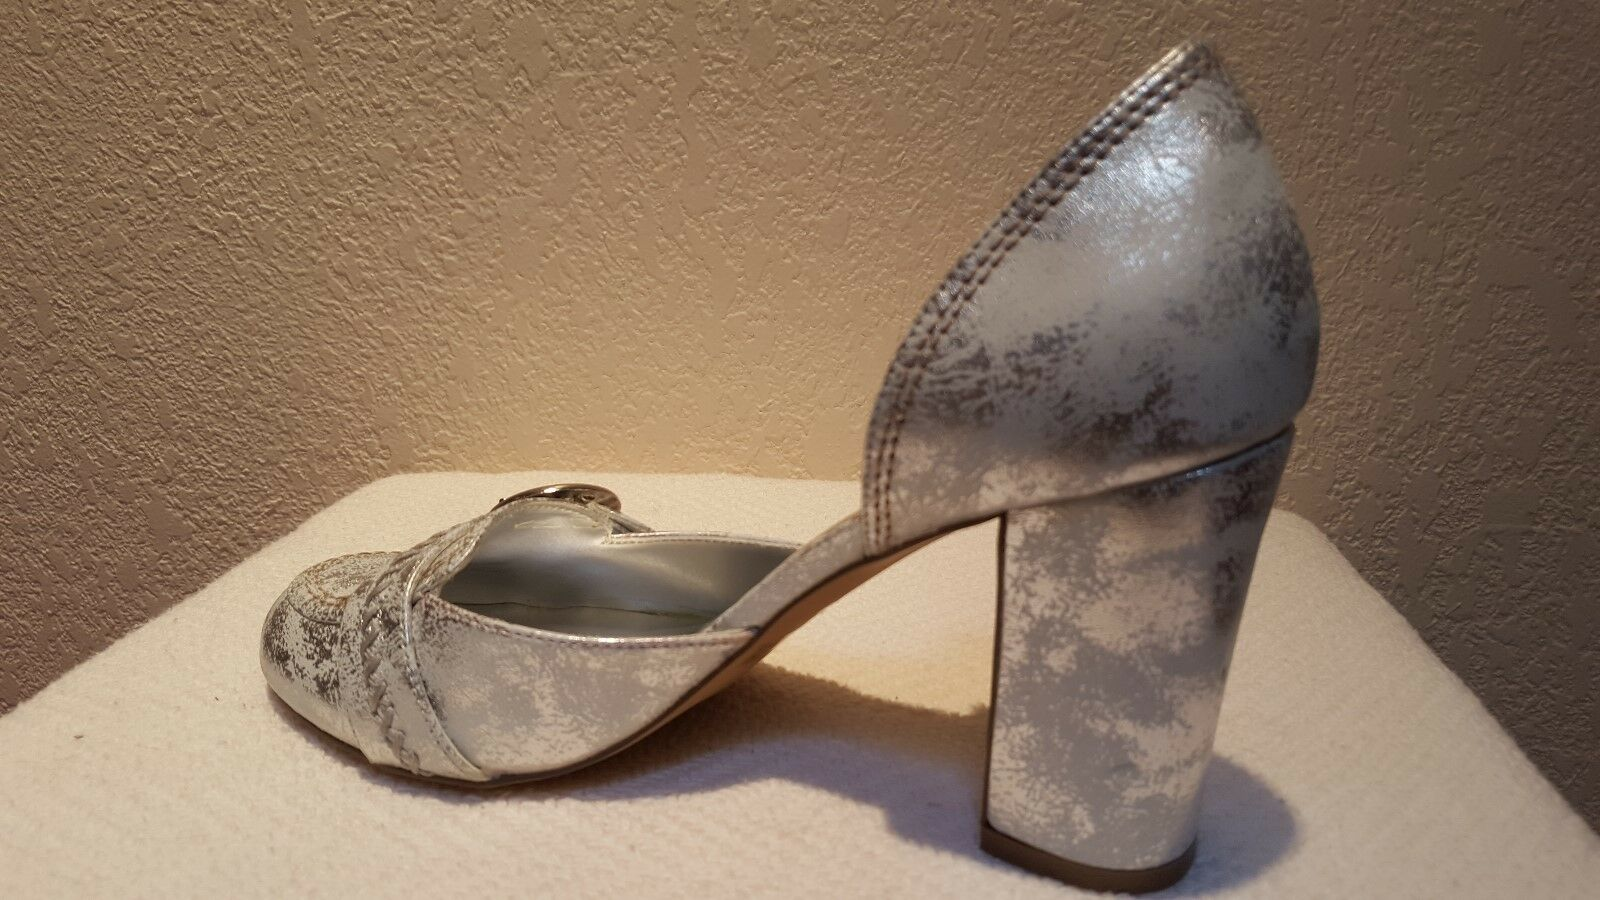 Gorgeous White with Silver Look Leather Look Silver Pumps a40f34